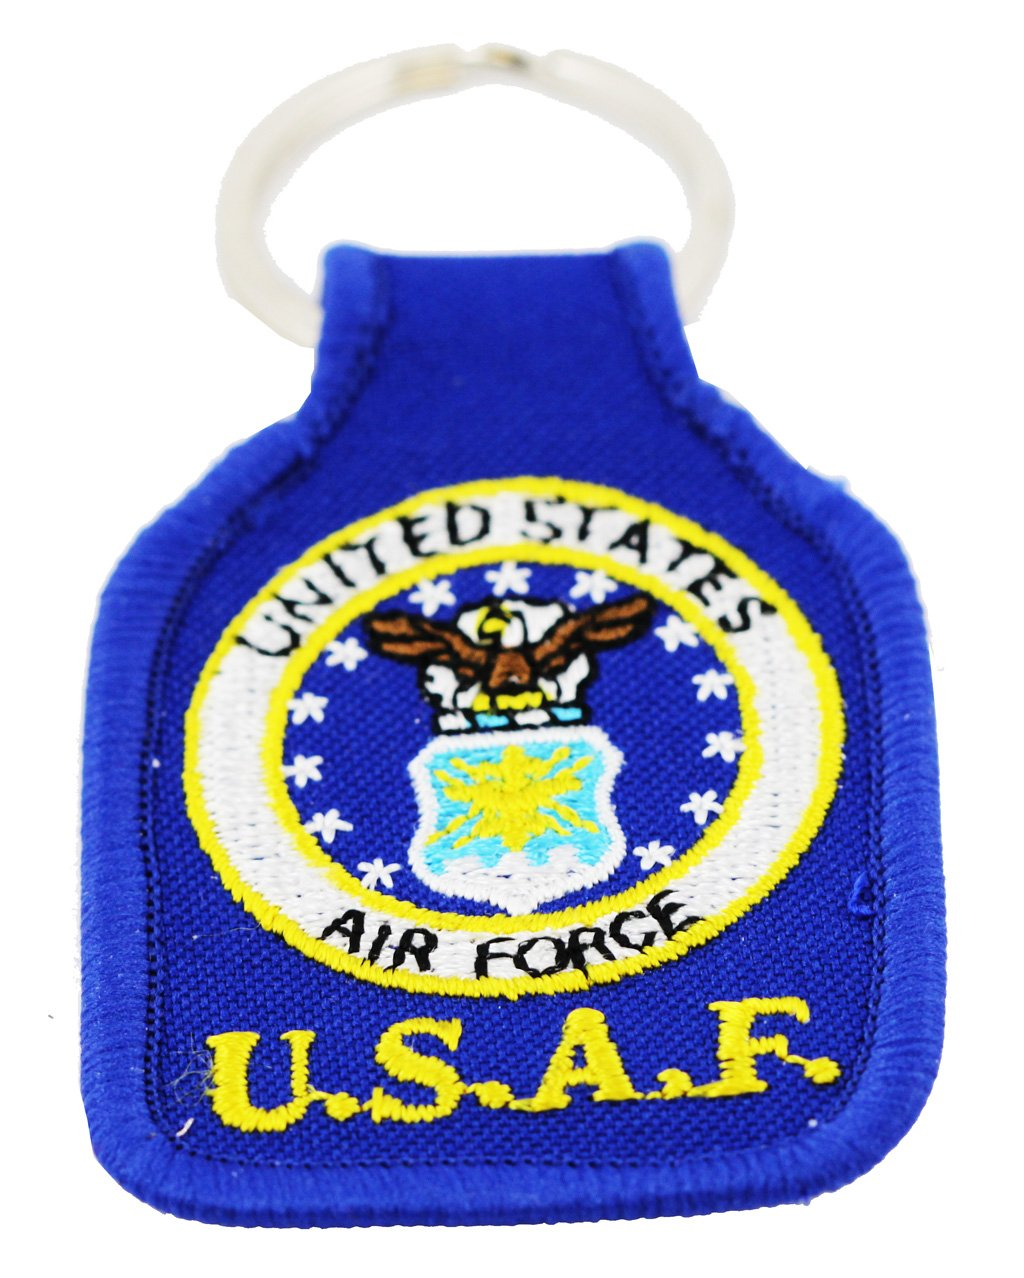 US Air Force Keychain United States Air Force Embroidered Key Chains Military Products Patriotic Gifts for Men Women Teens Christmas Holidays Birthdays Veterans Day Rush Industries Inc.